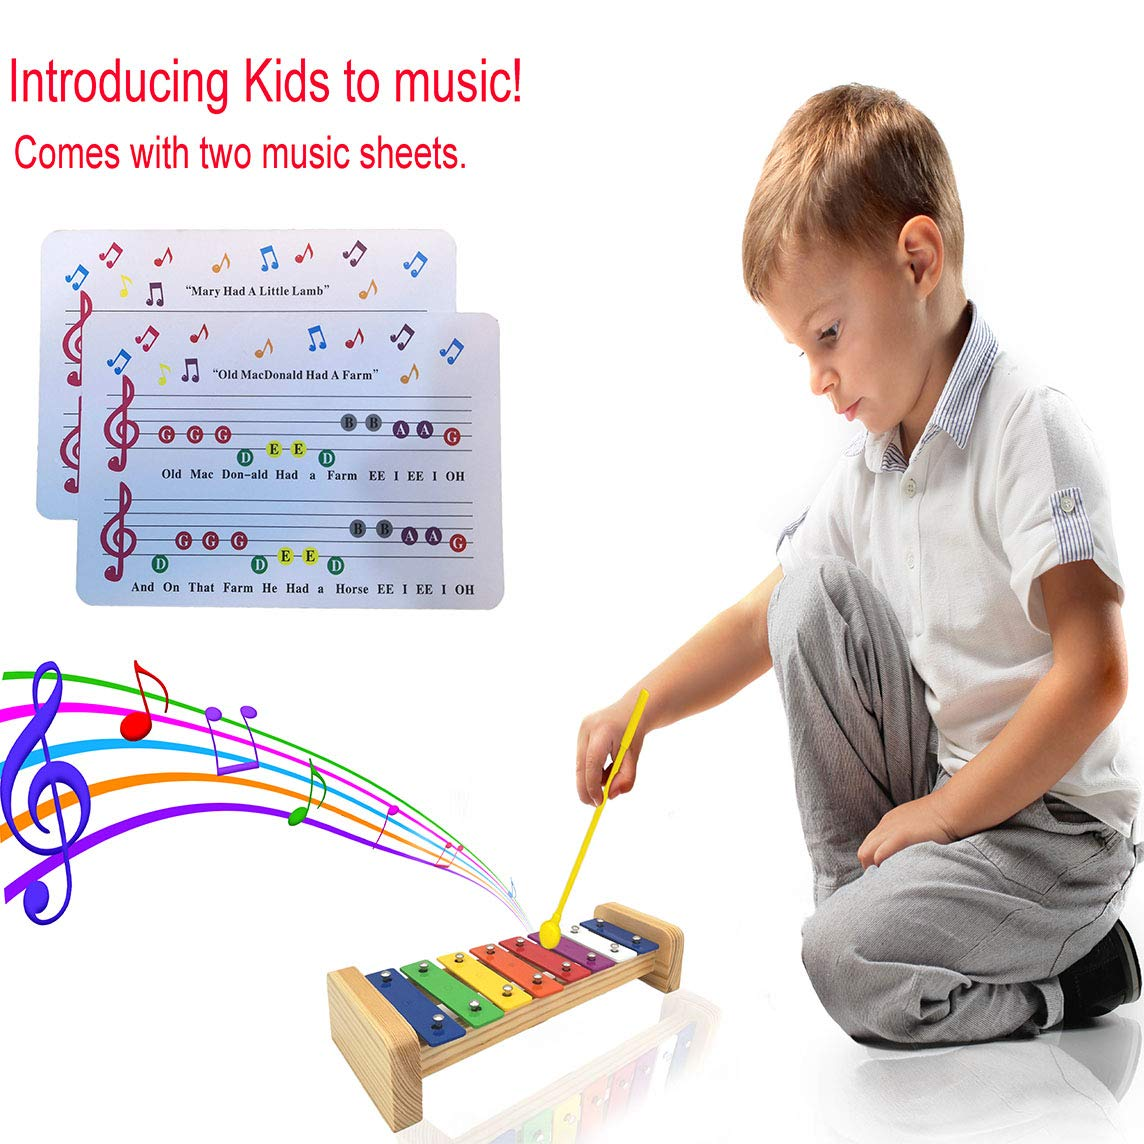 XIYITOY Xylophone for kids,The First Birthday Gift for kids 1-3 Year Old Girl,Boys,Musical Kid Toy for Kids for 4-8 Year Old Boys Gift,Whith Two Child-Safe Mallets for 2-6 Year Old for Making Fun Musi by XIYITOY (Image #5)